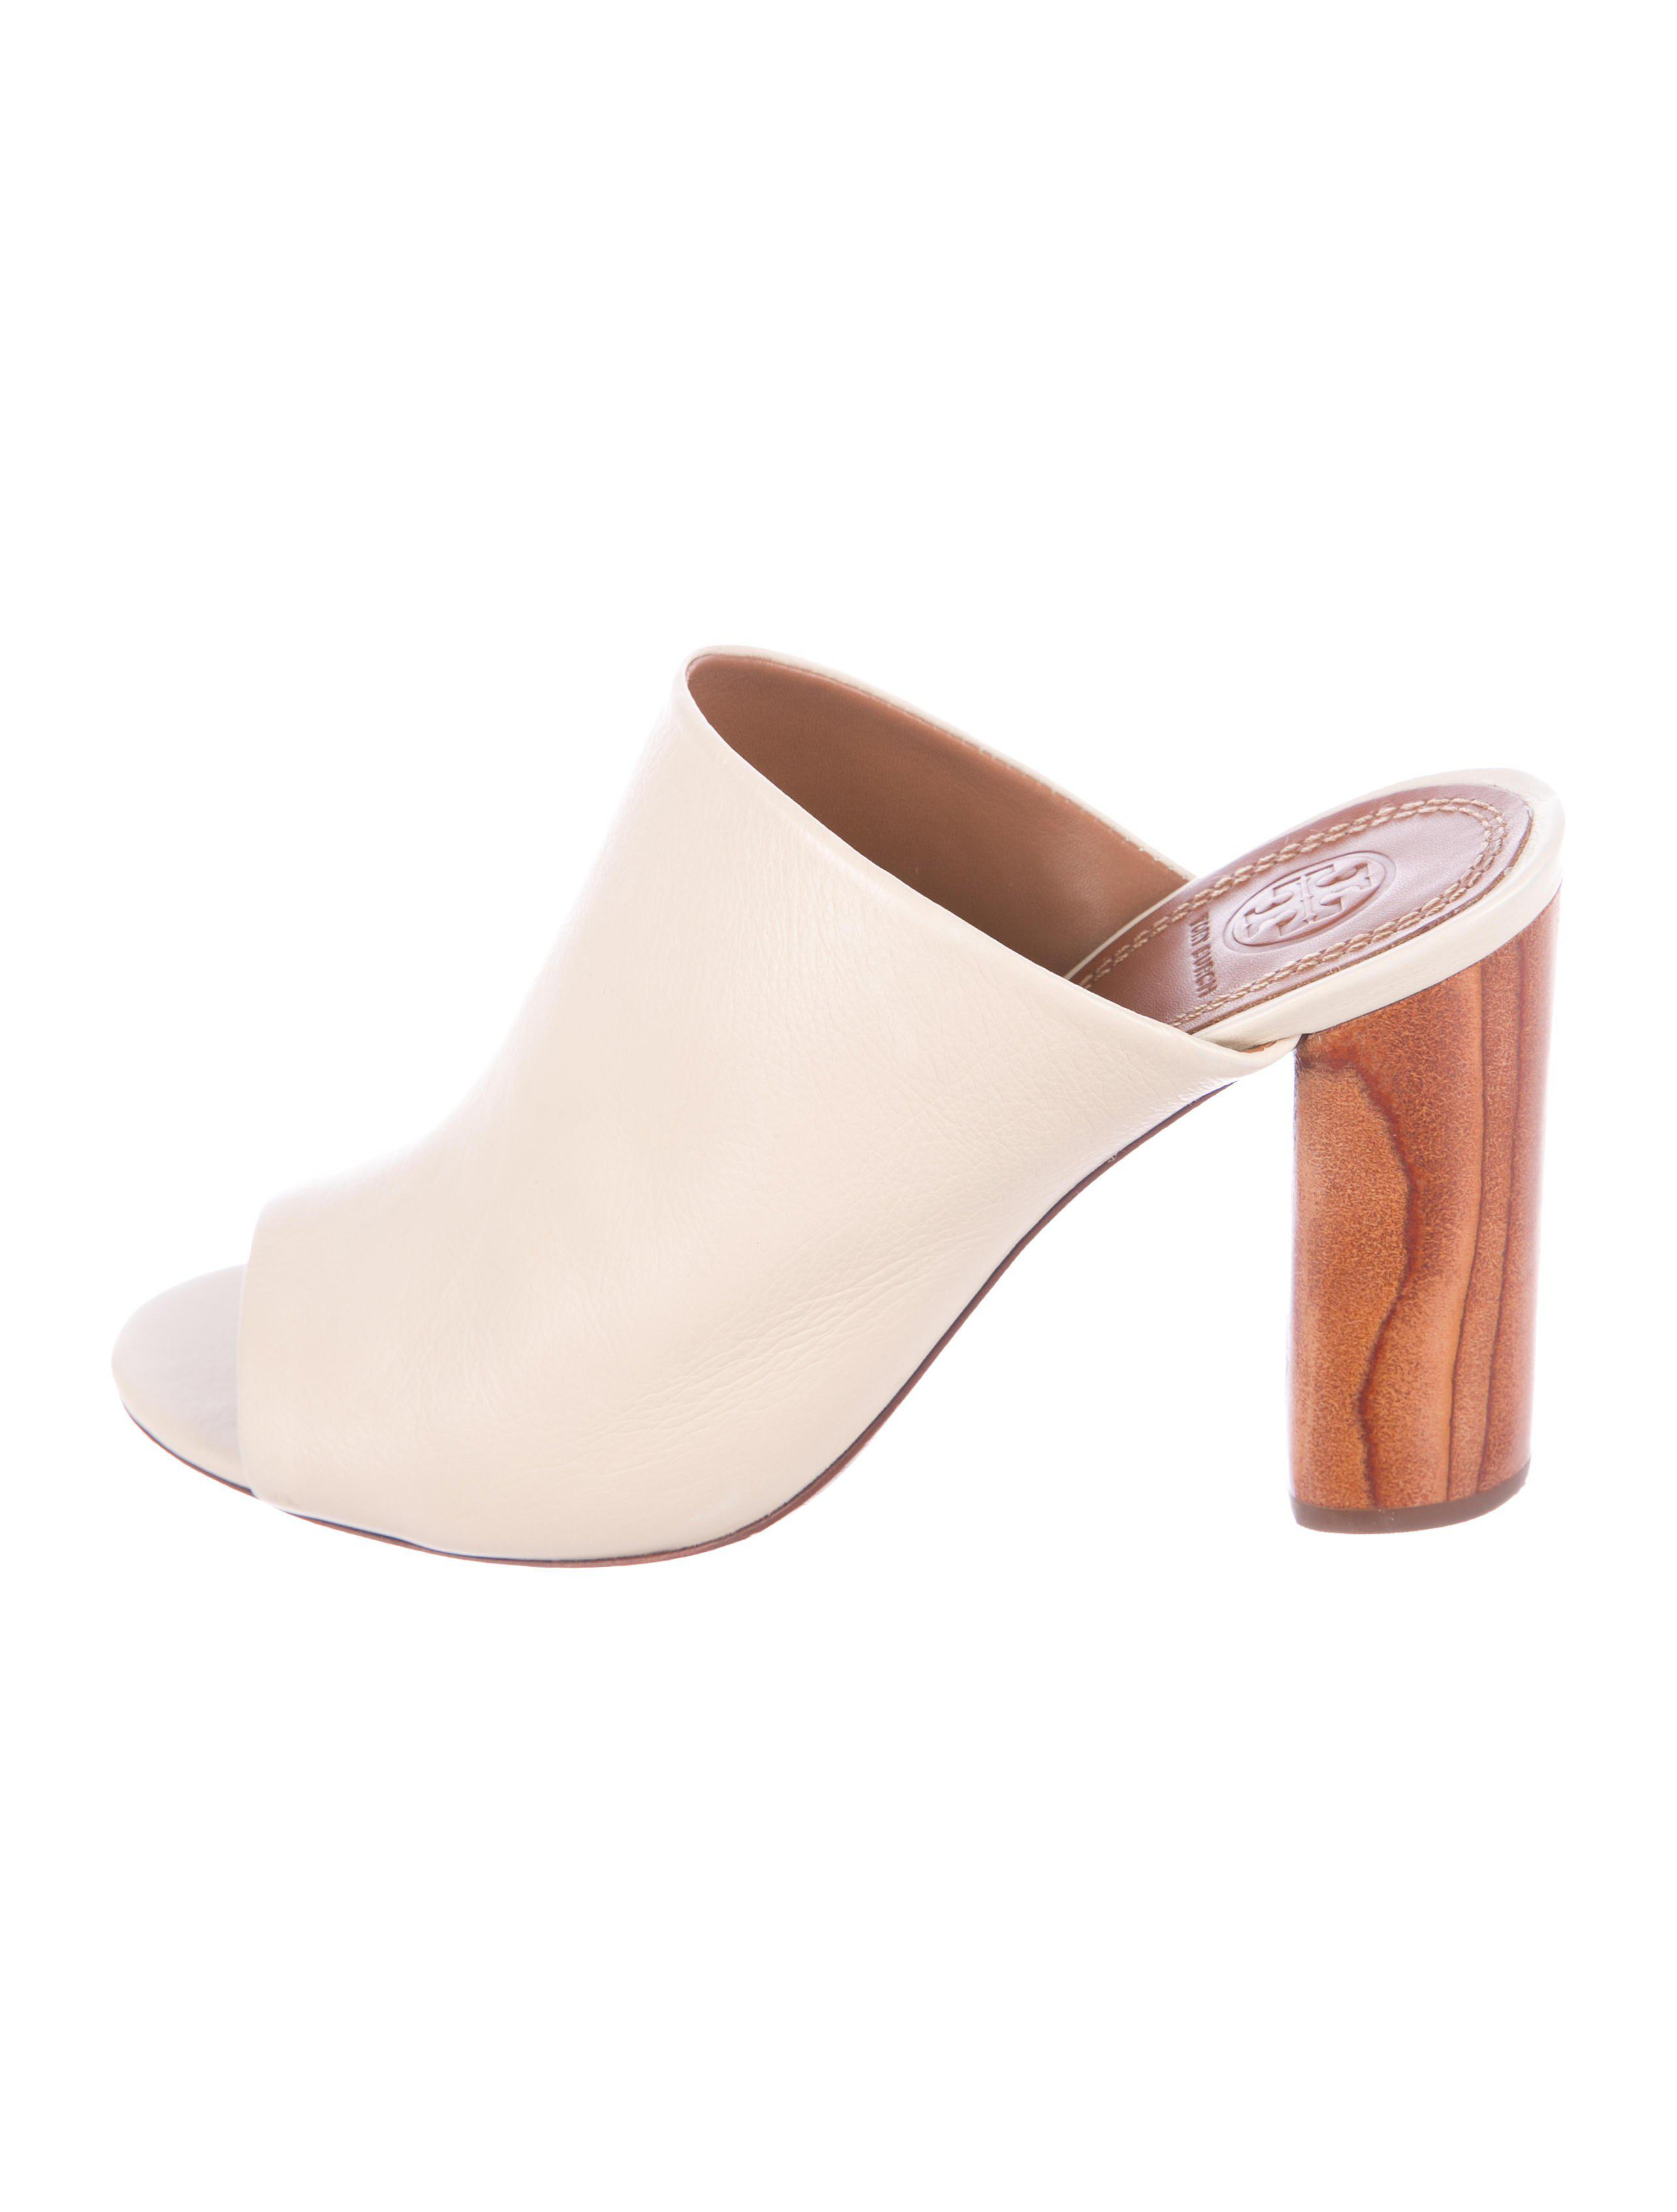 a80fdeaff1b Lyst - Tory Burch Raya Leather Mules Beige in Natural